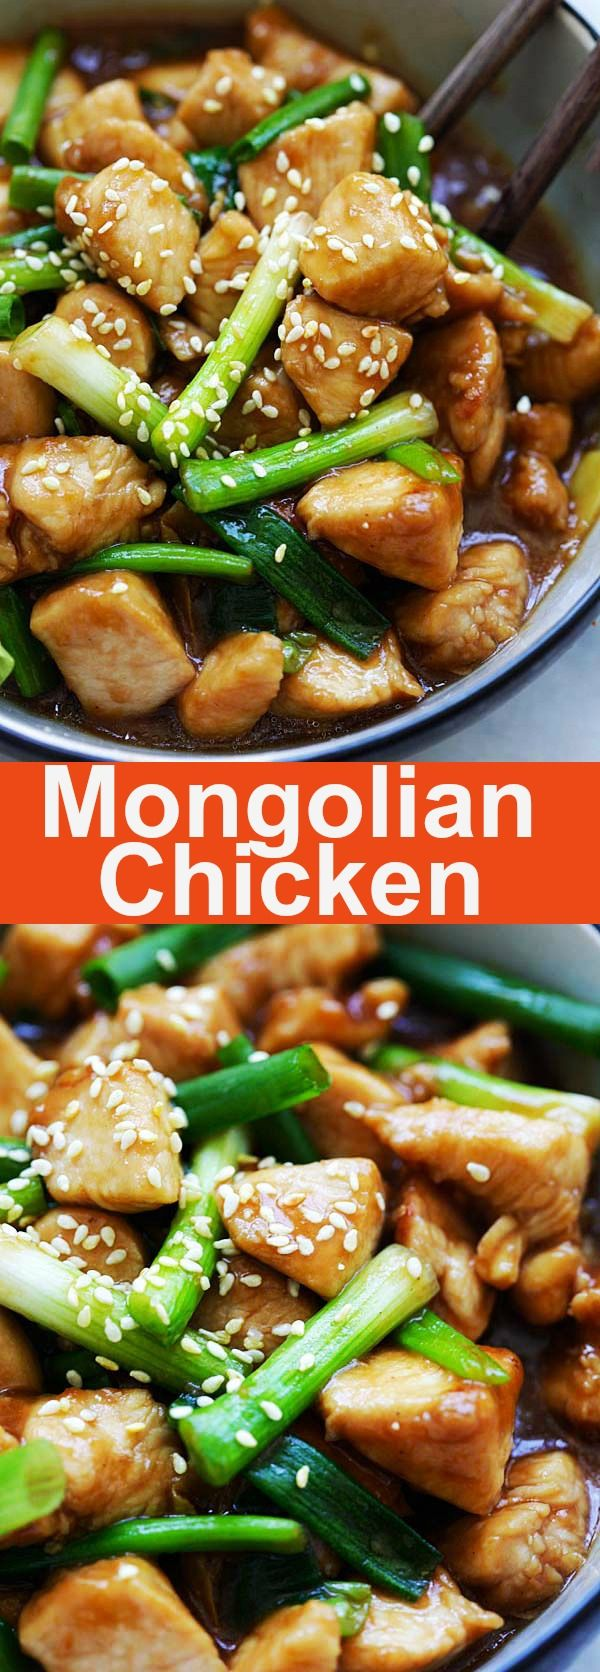 Mongolian Chicken – tender and juicy Chinese chicken stir-fry with scallions and brown sauce. This Mongolian Chicken recipe is so much better than takeout | rasamalaysia.com